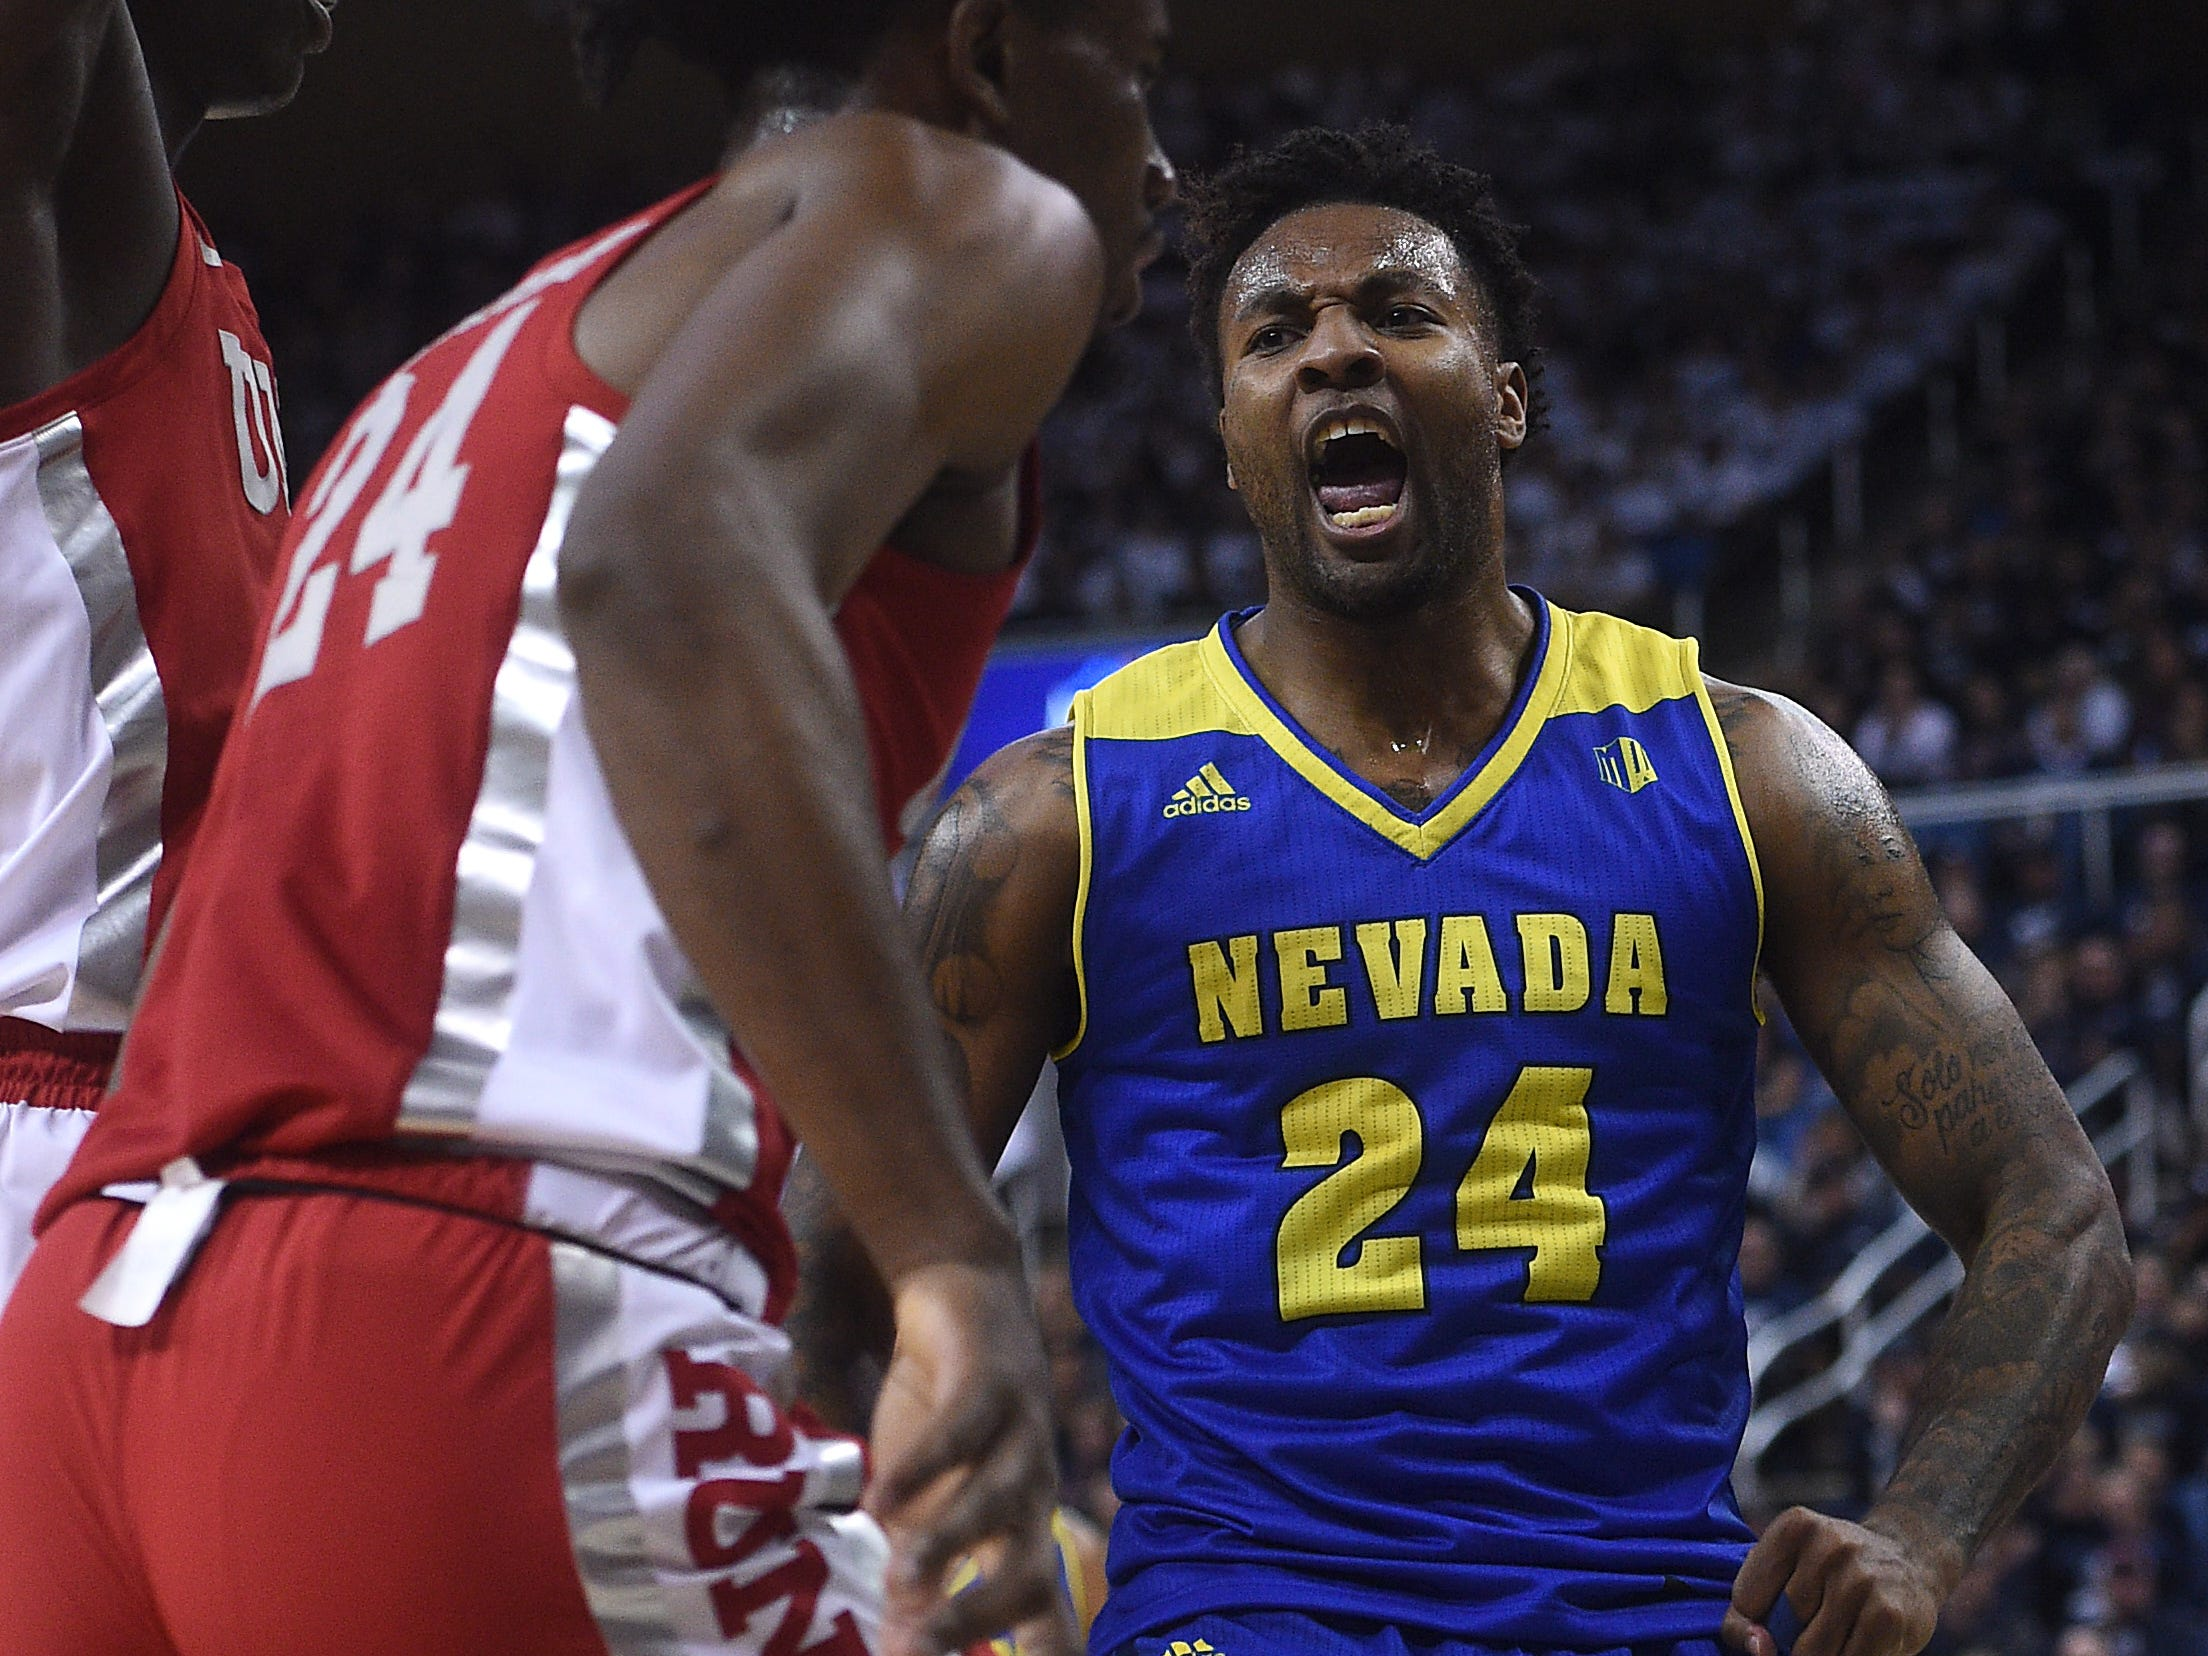 Nevada's Jordan Caroline reacts after scoring while taking on UNLV during their basketball game at Lawlor Events Center in Reno on Feb. 27, 2019.